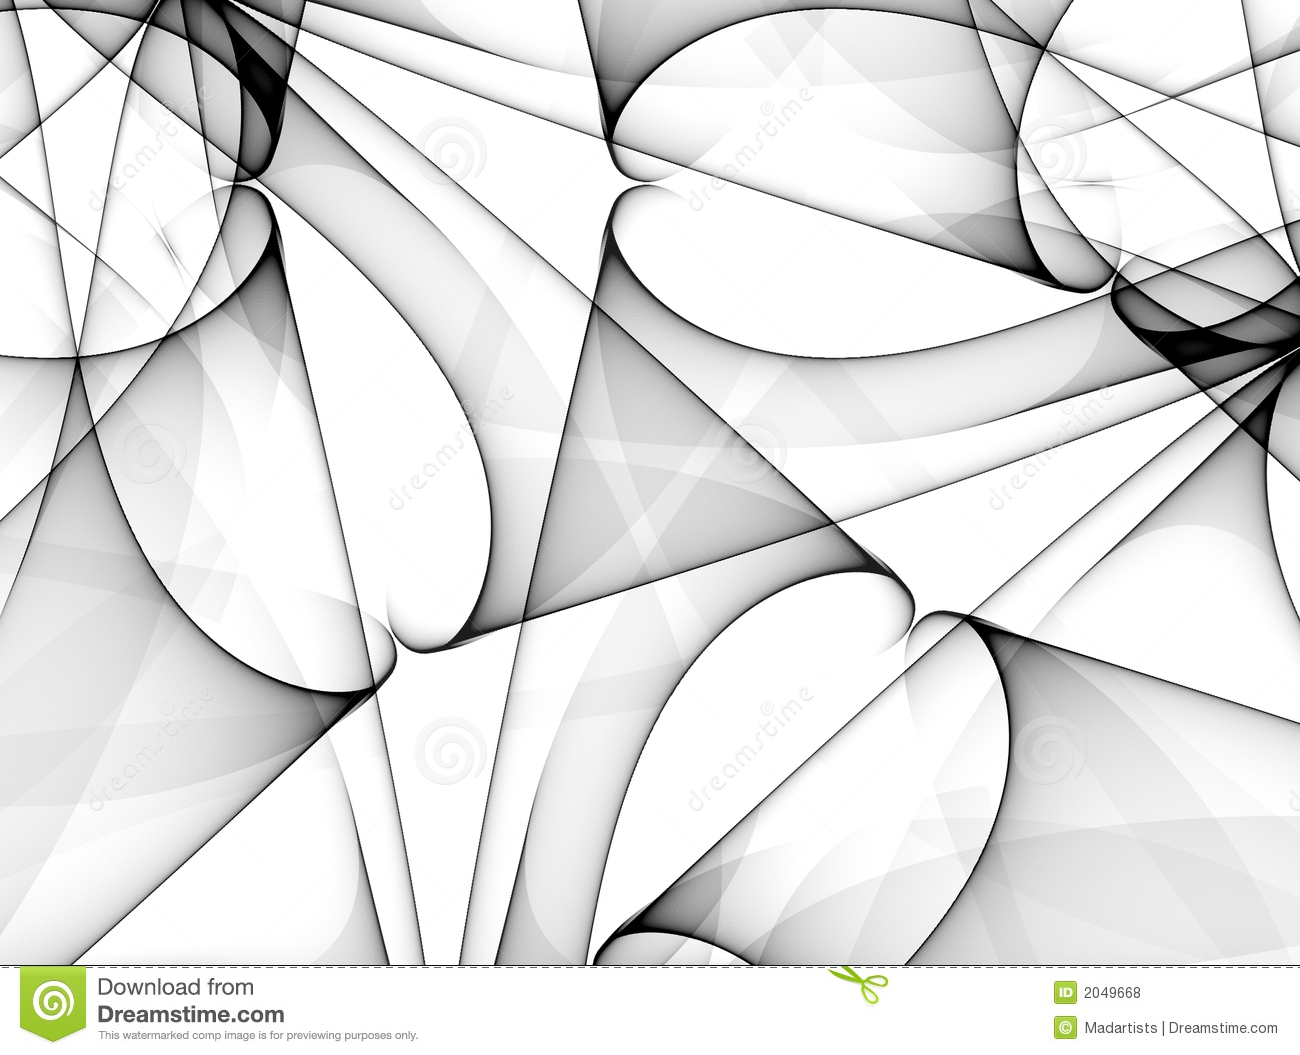 Lines And Designs : Vaious black lines patterns stock illustration image